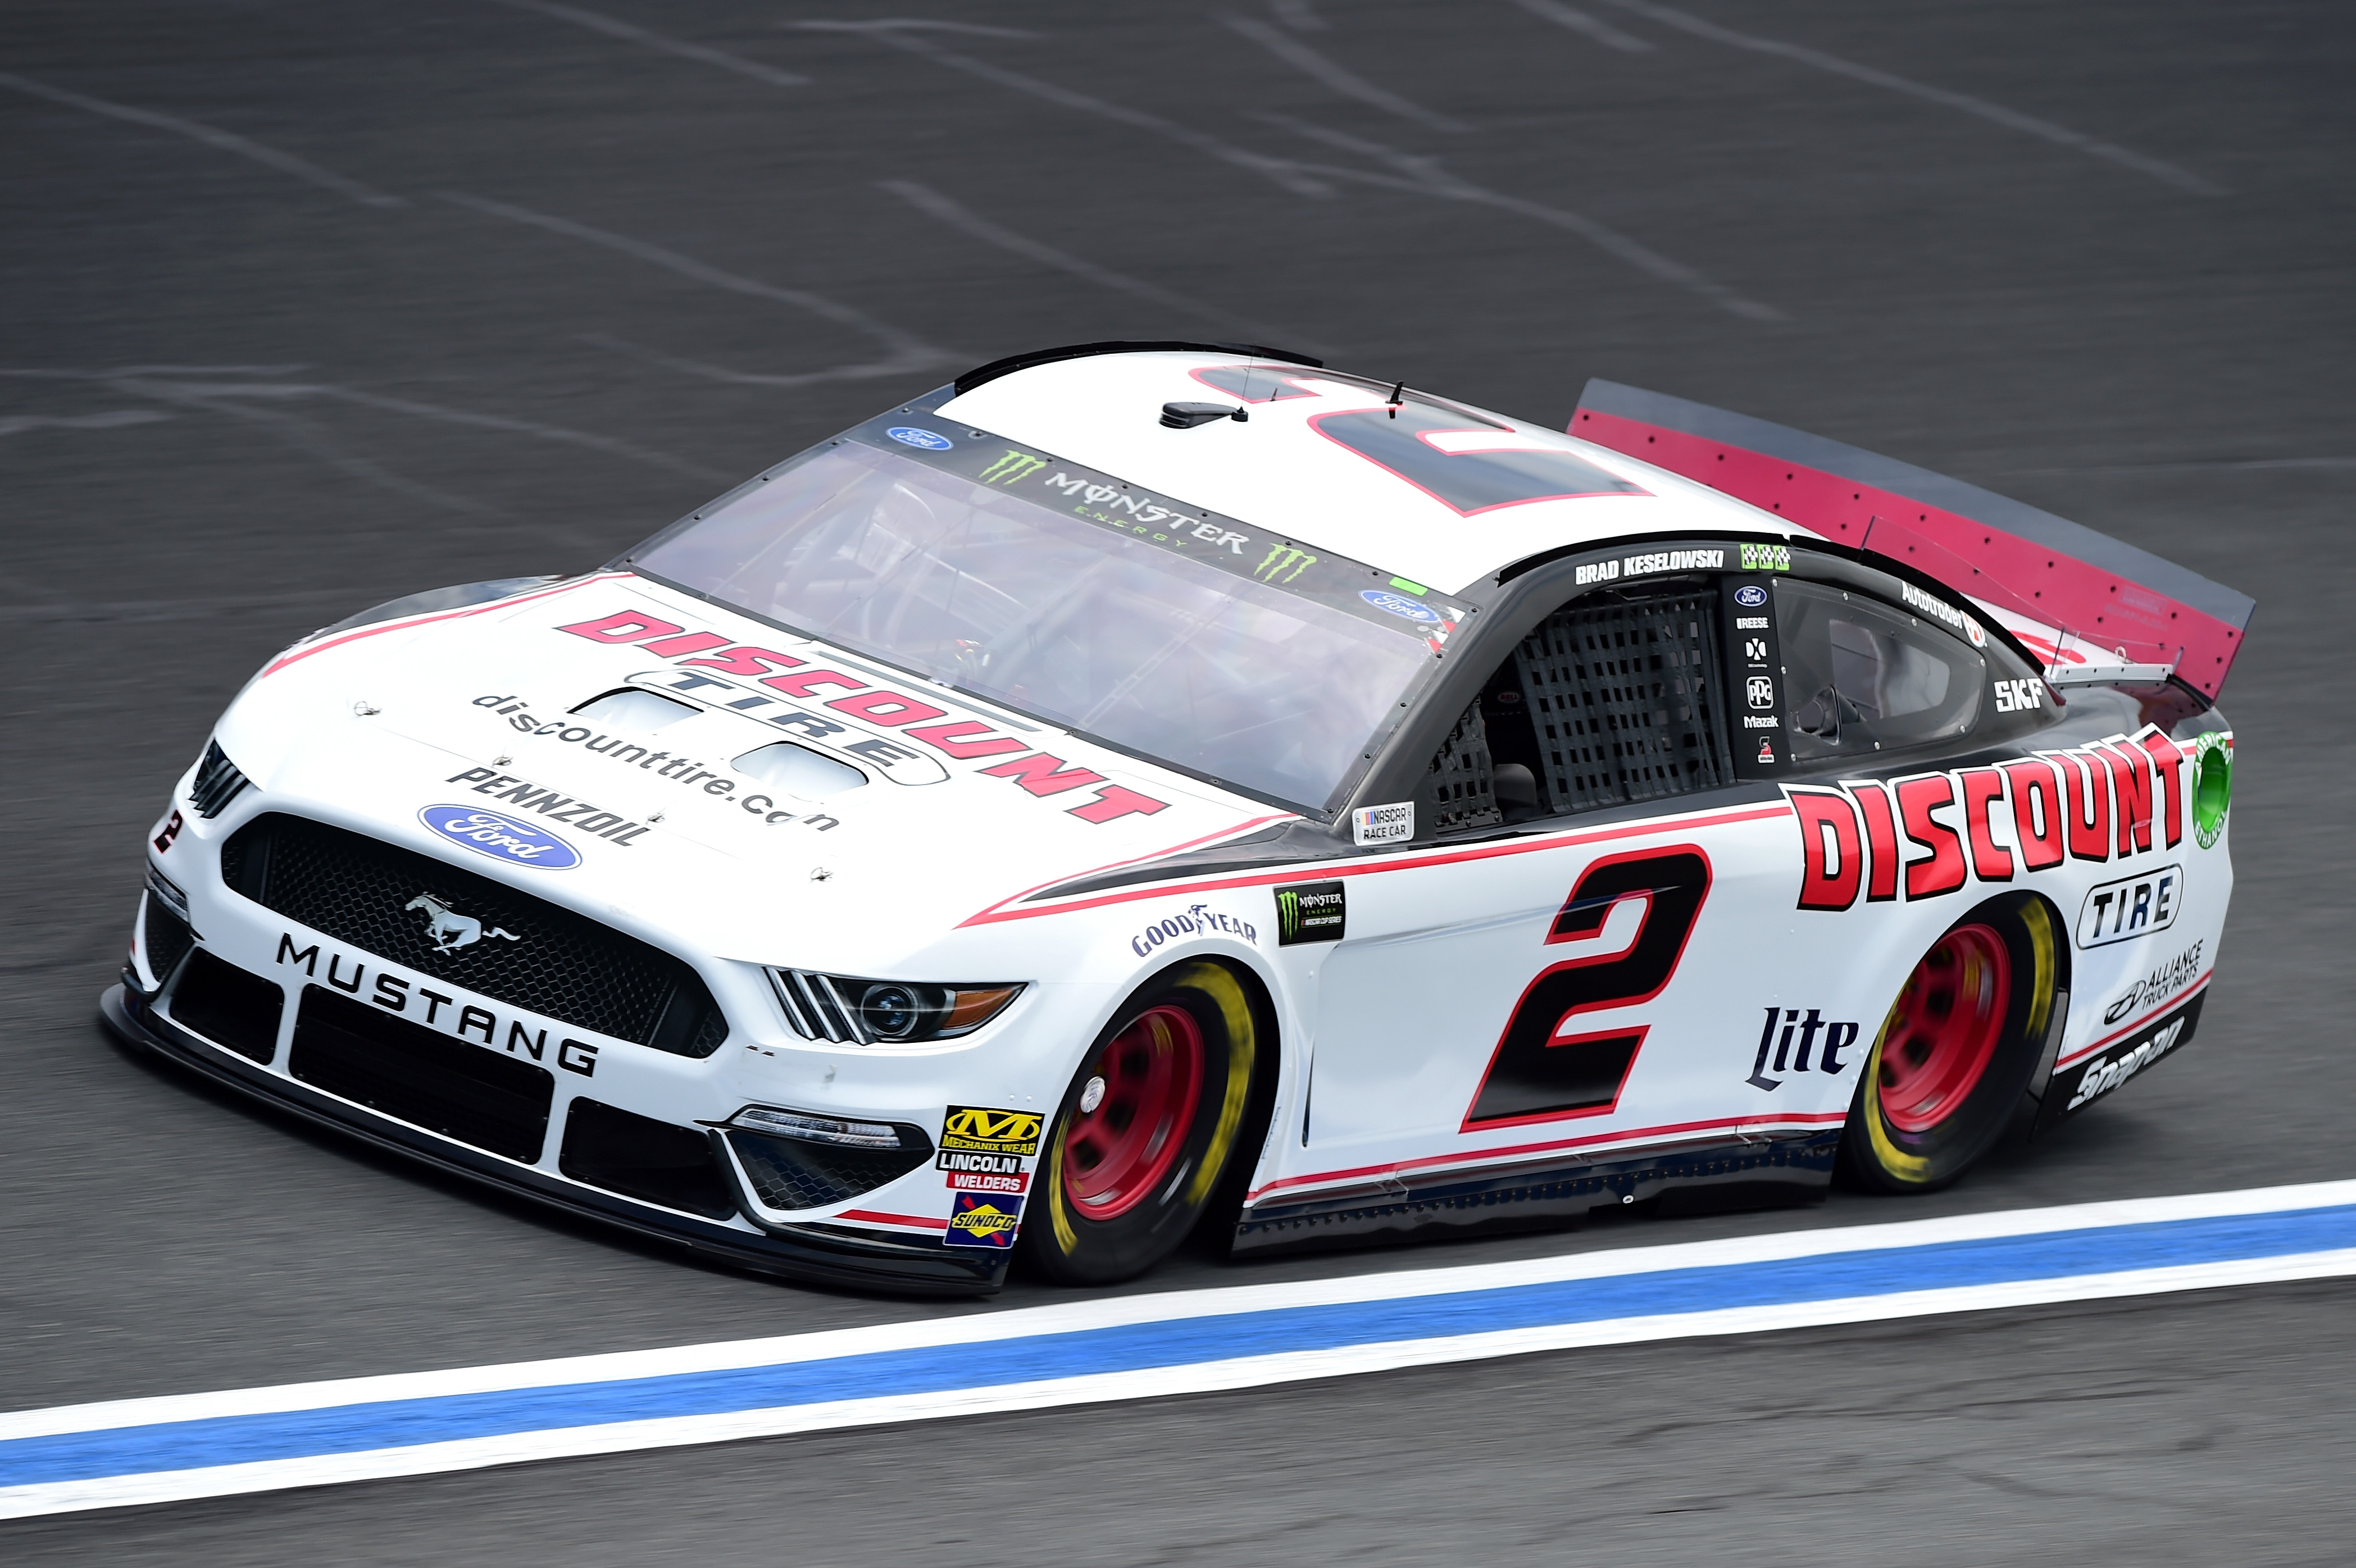 CHARLOTTE, NC - MAY 17: Brad Keselowski, driver of the #2 Discount Tire Ford, practices for the Monster Energy NASCAR Cup Series All-Star Race and the Monster Energy NASCAR Cup Series Open Race at Charlotte Motor Speedway on May 17, 2019 in Charlotte, North Carolina. (Photo by Jared C. Tilton/Getty Images) | Getty Images